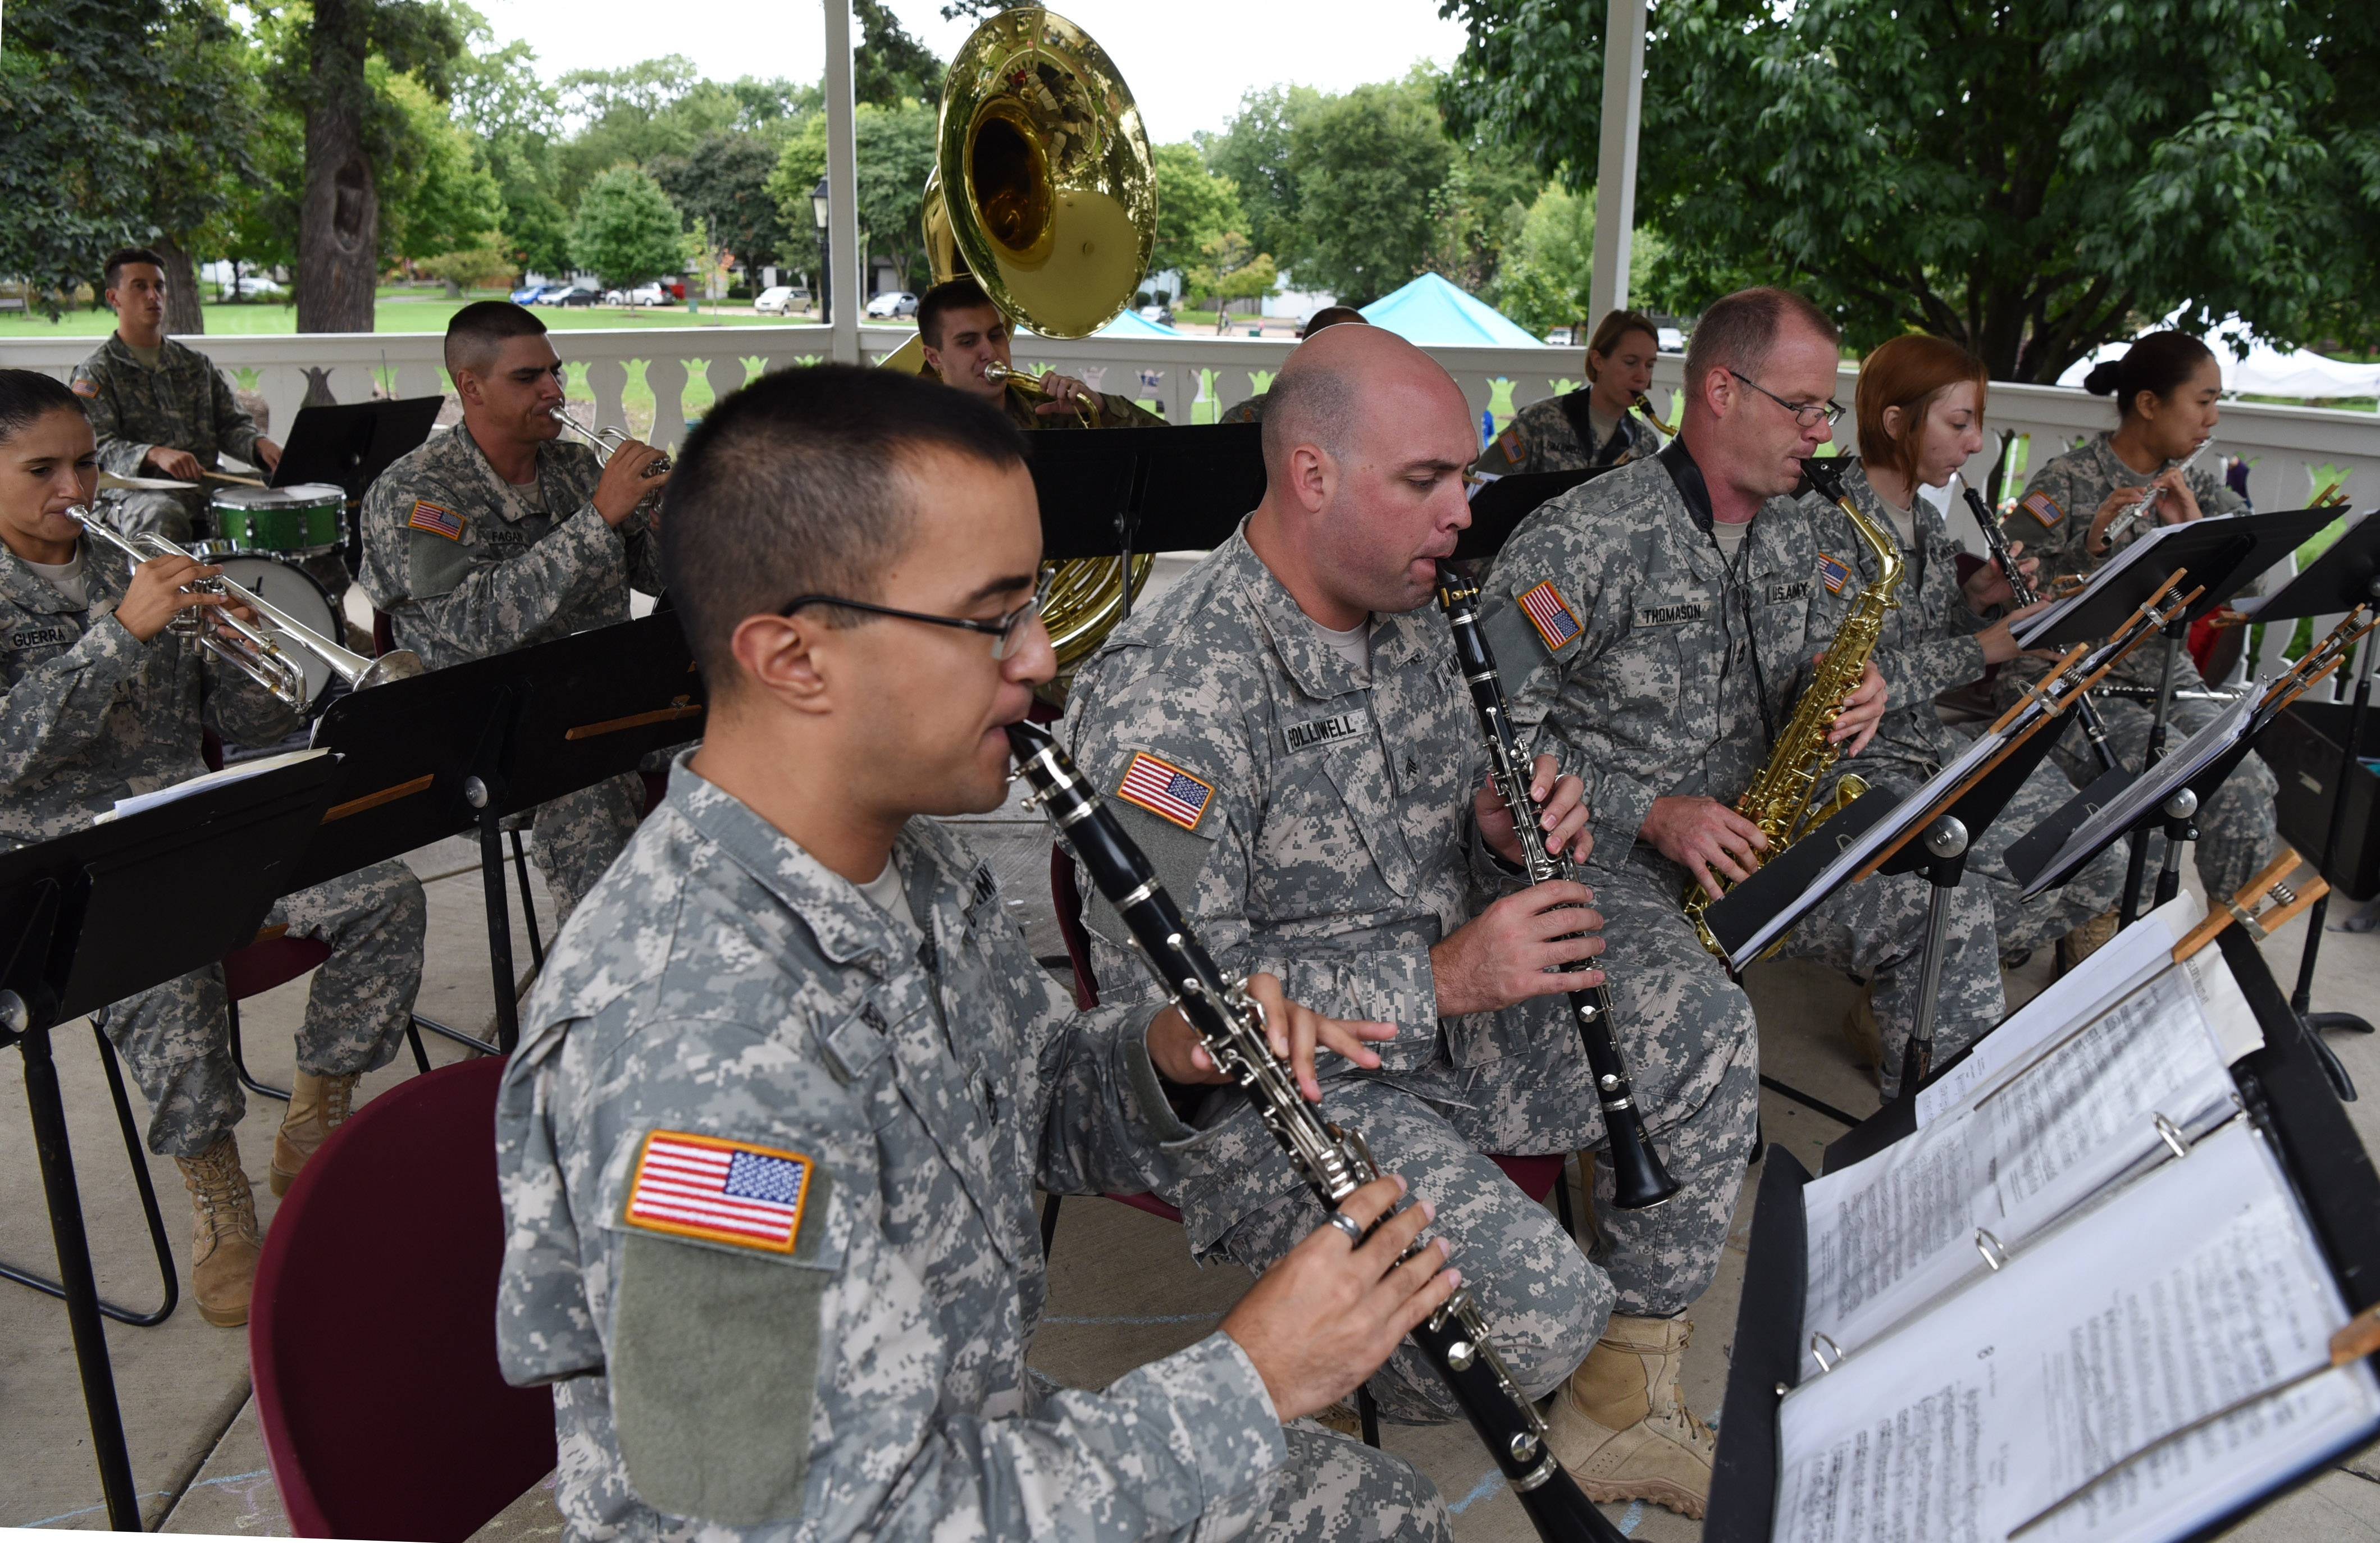 Robert Reed, front, and Jeffery Followell of the 144th Ceremonial Army Band, based in Springfield, Illinois, play clarinet during last year's Bartlett Heritage Days celebration.